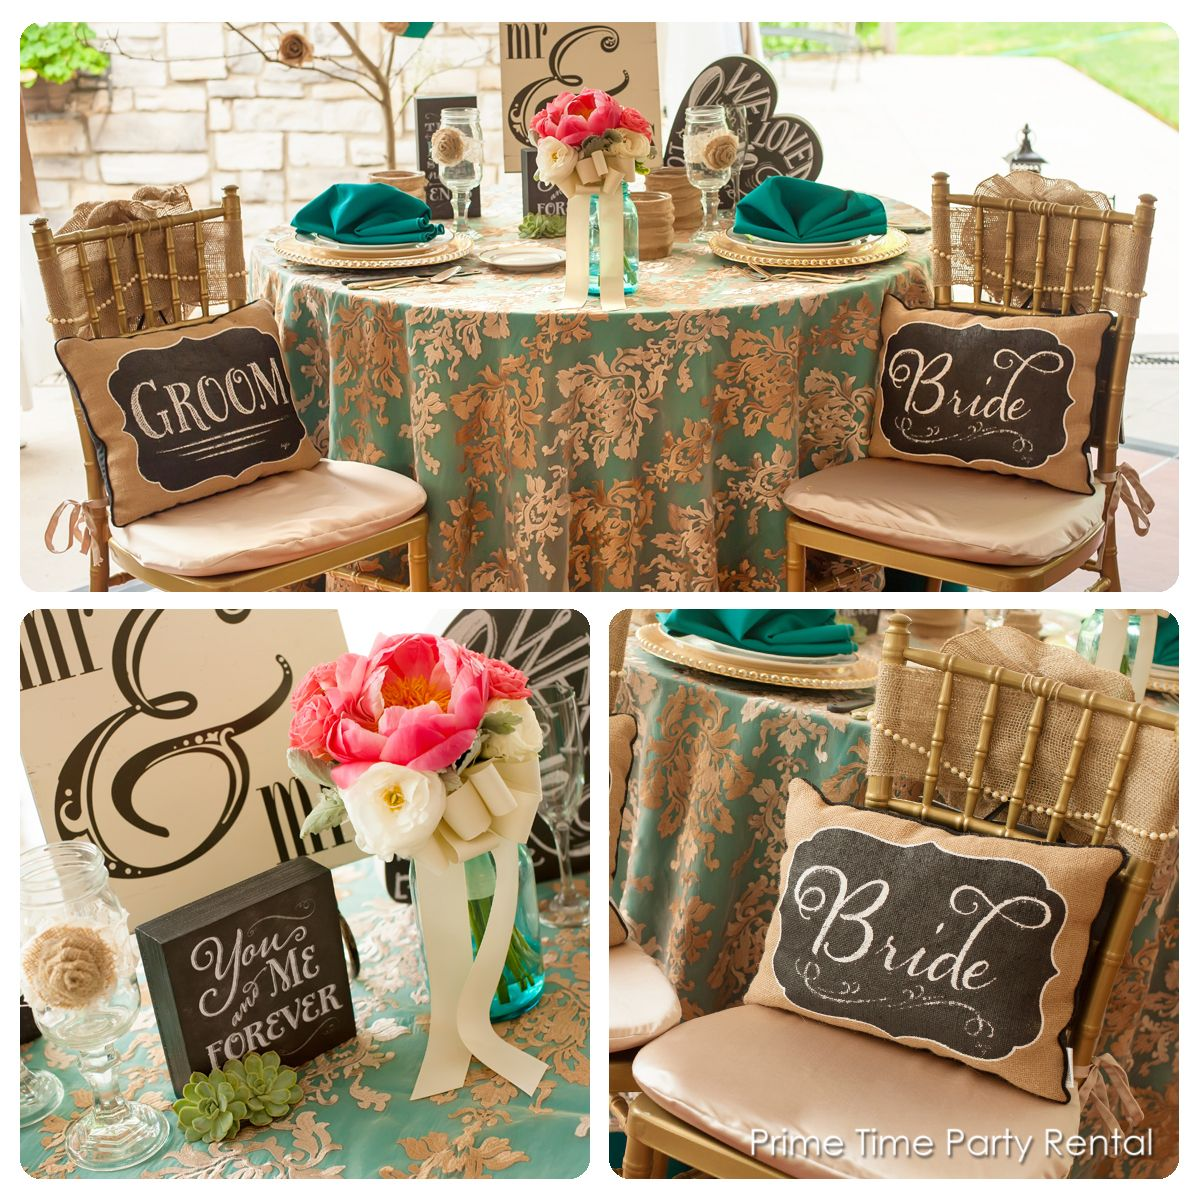 Rustic Chic Sweetheart Table With Teal Gold And Burlap Burlap Rustic Wedding Teal Gold Chair And Table Rental Party Rentals Wedding Event Planning